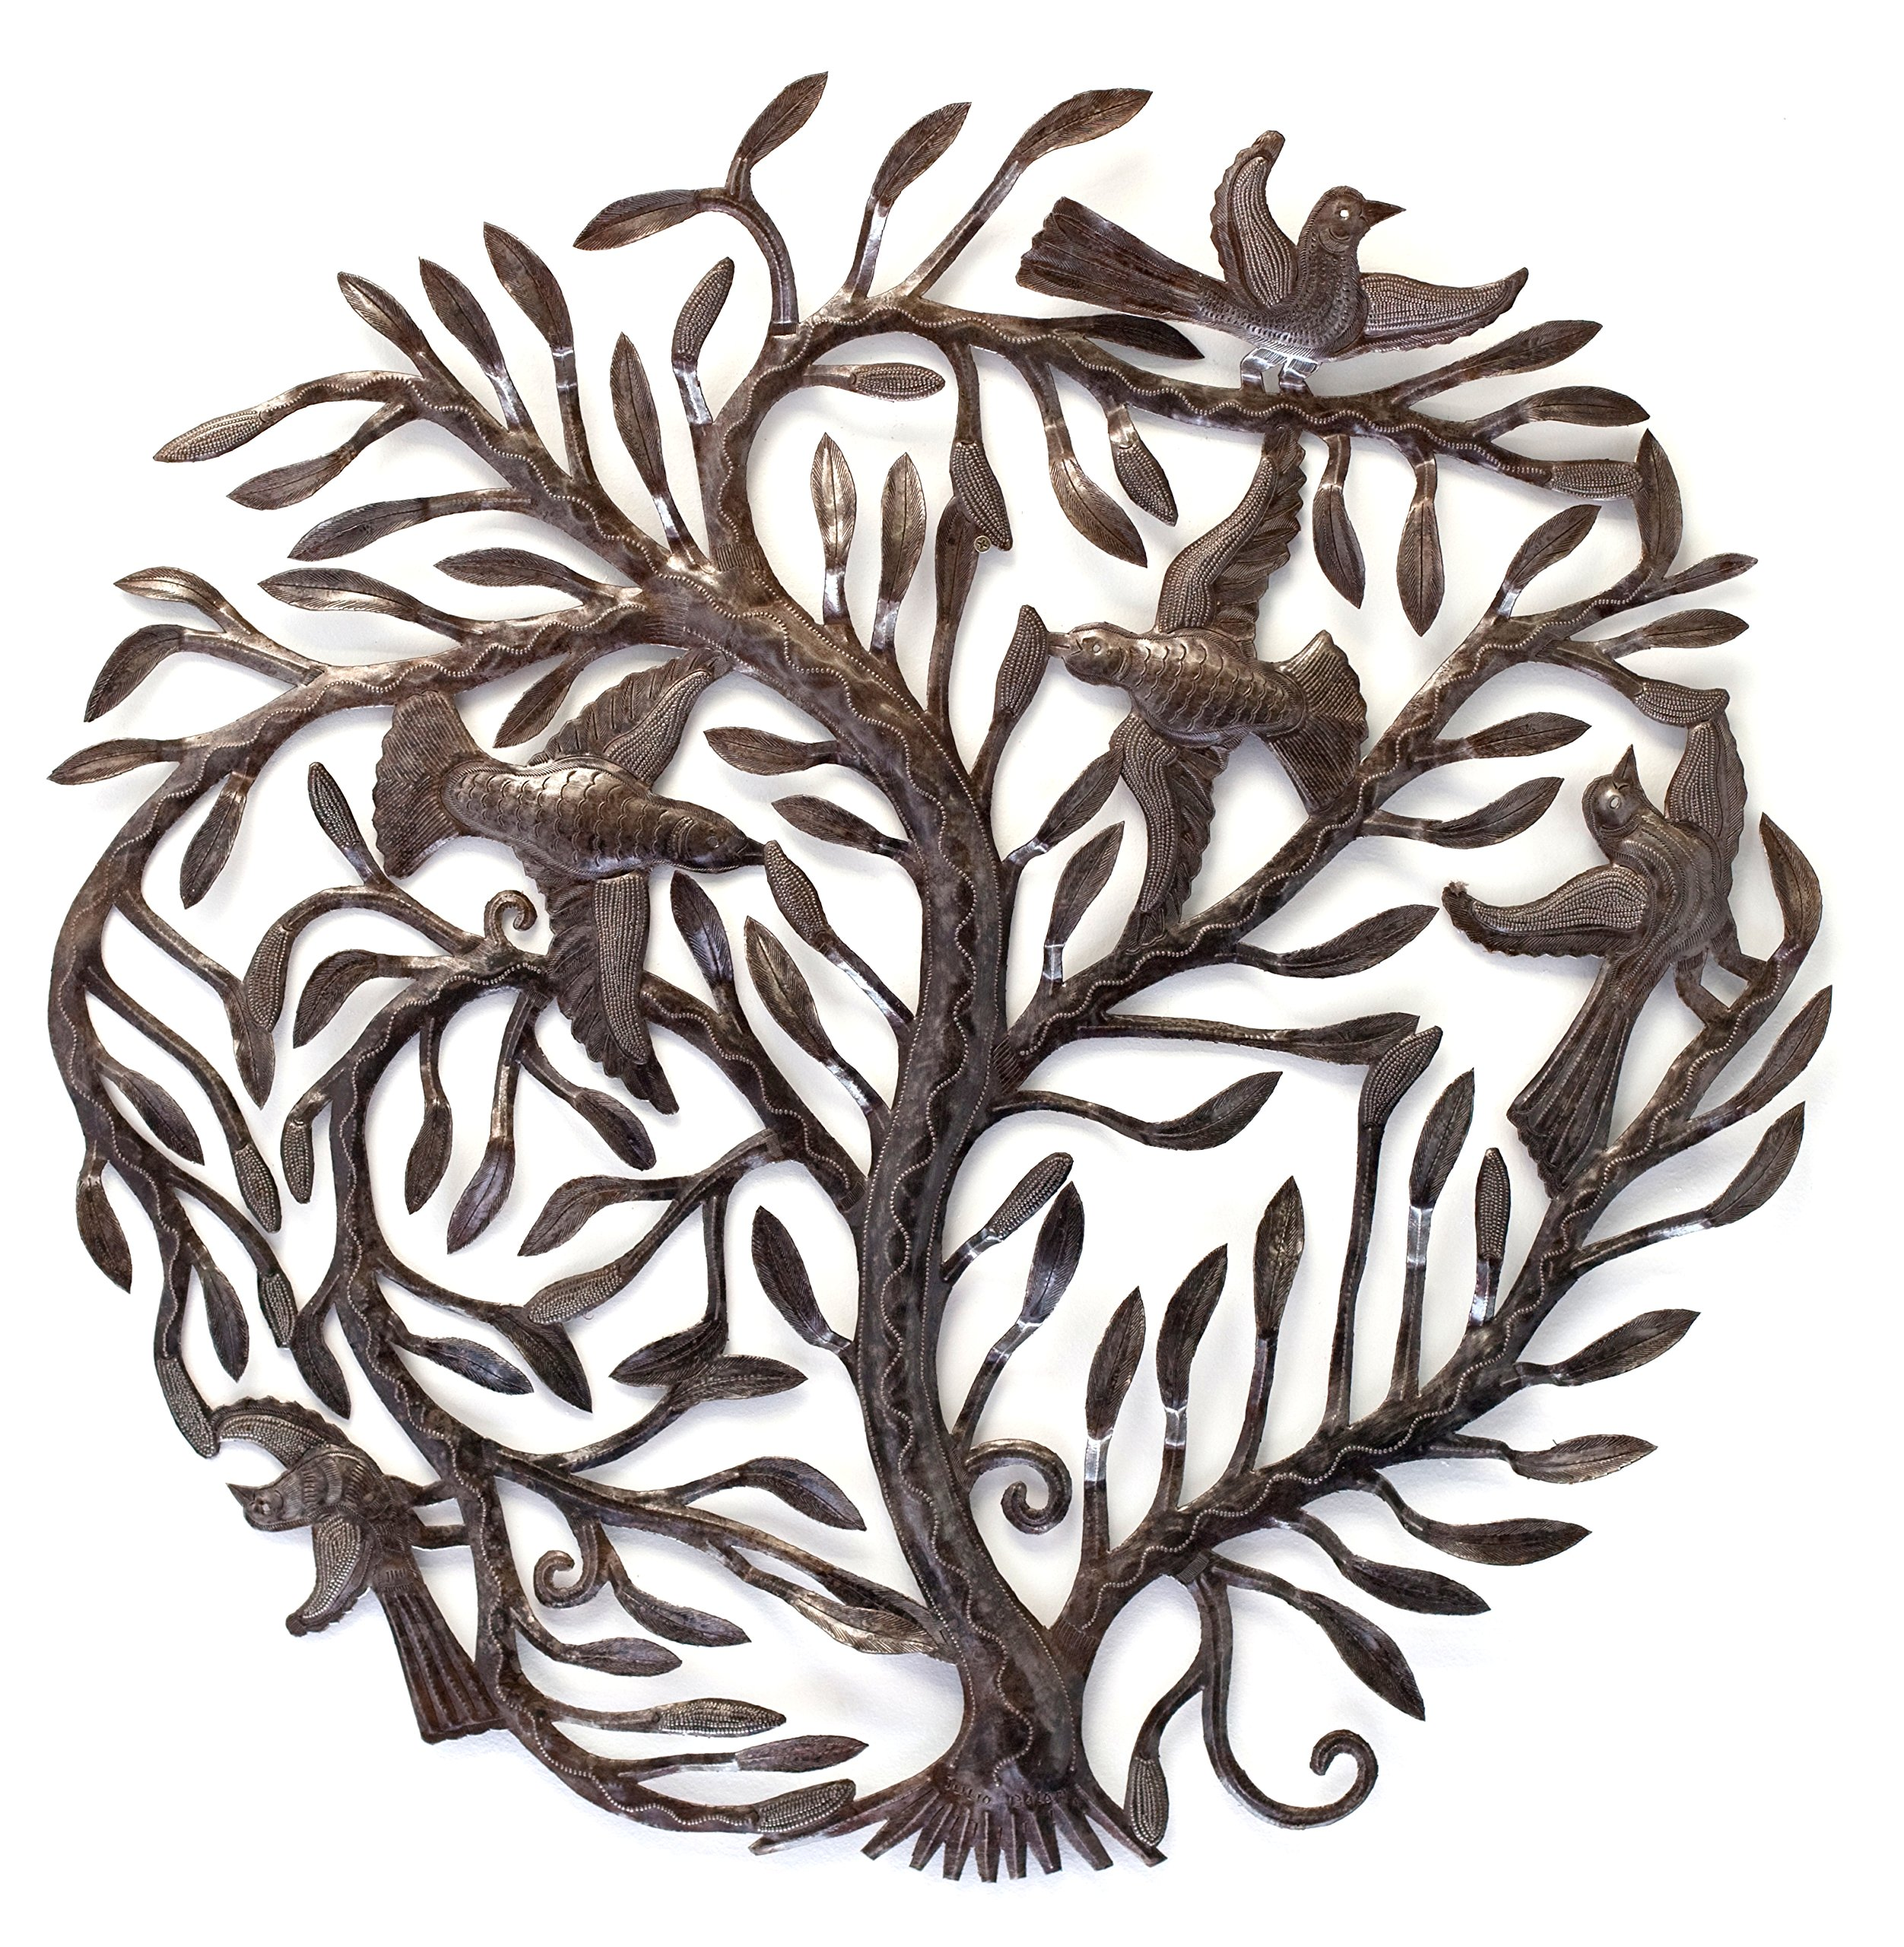 Family Tree of Life, Large Outdoor Wall Art Sculpture, Recycled Metal Haiti, 32'' x 32''